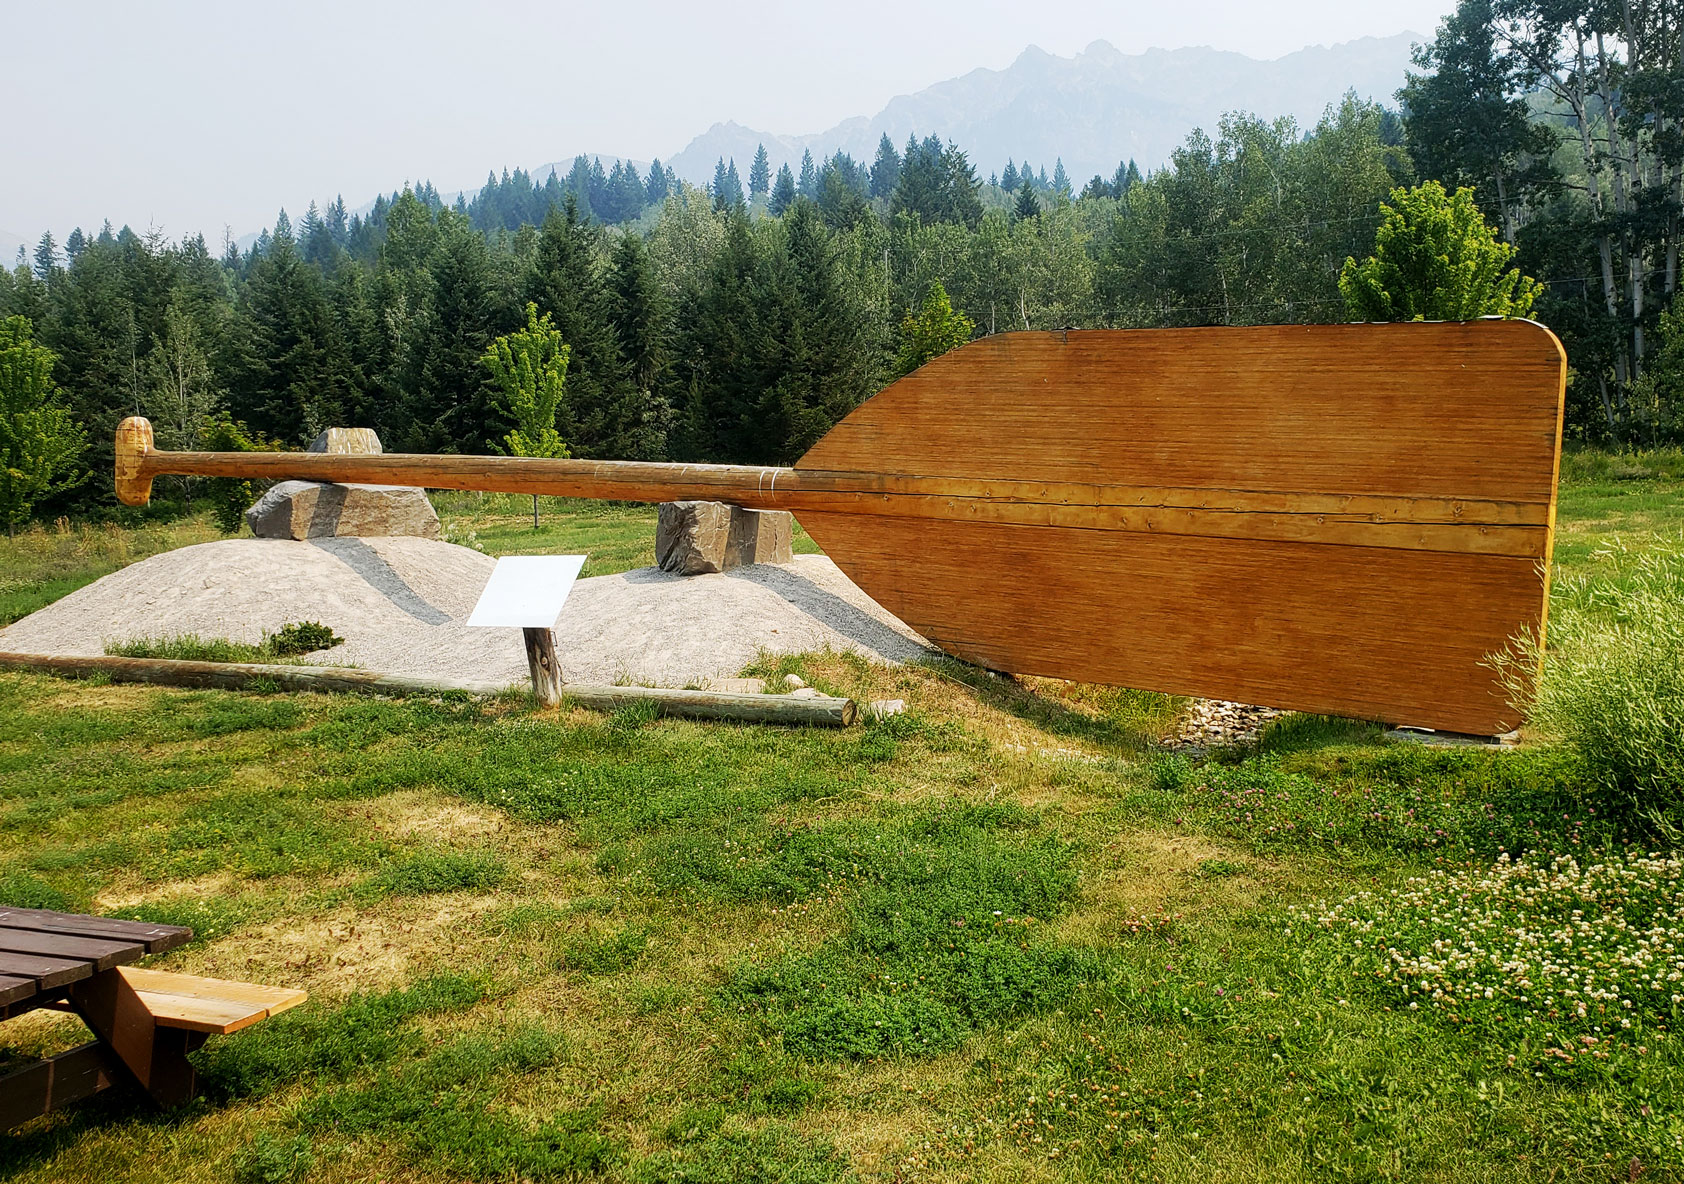 World's Largest Paddle at Columbia Wetlands Outpost